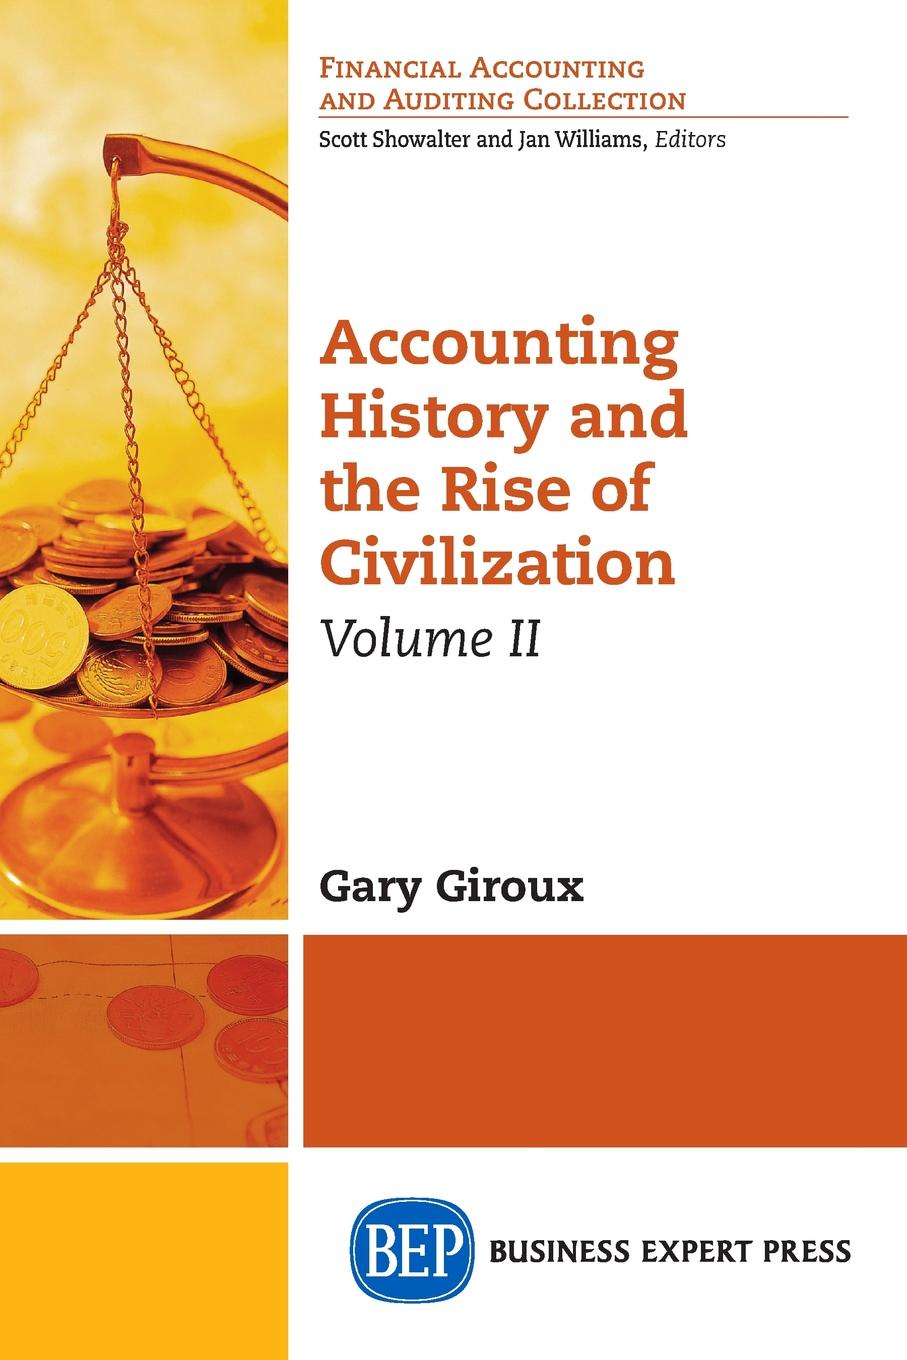 Gary Giroux Accounting History and the Rise of Civilization, Volume II christian valentin soils as a key component of the critical zone 1 functions and services